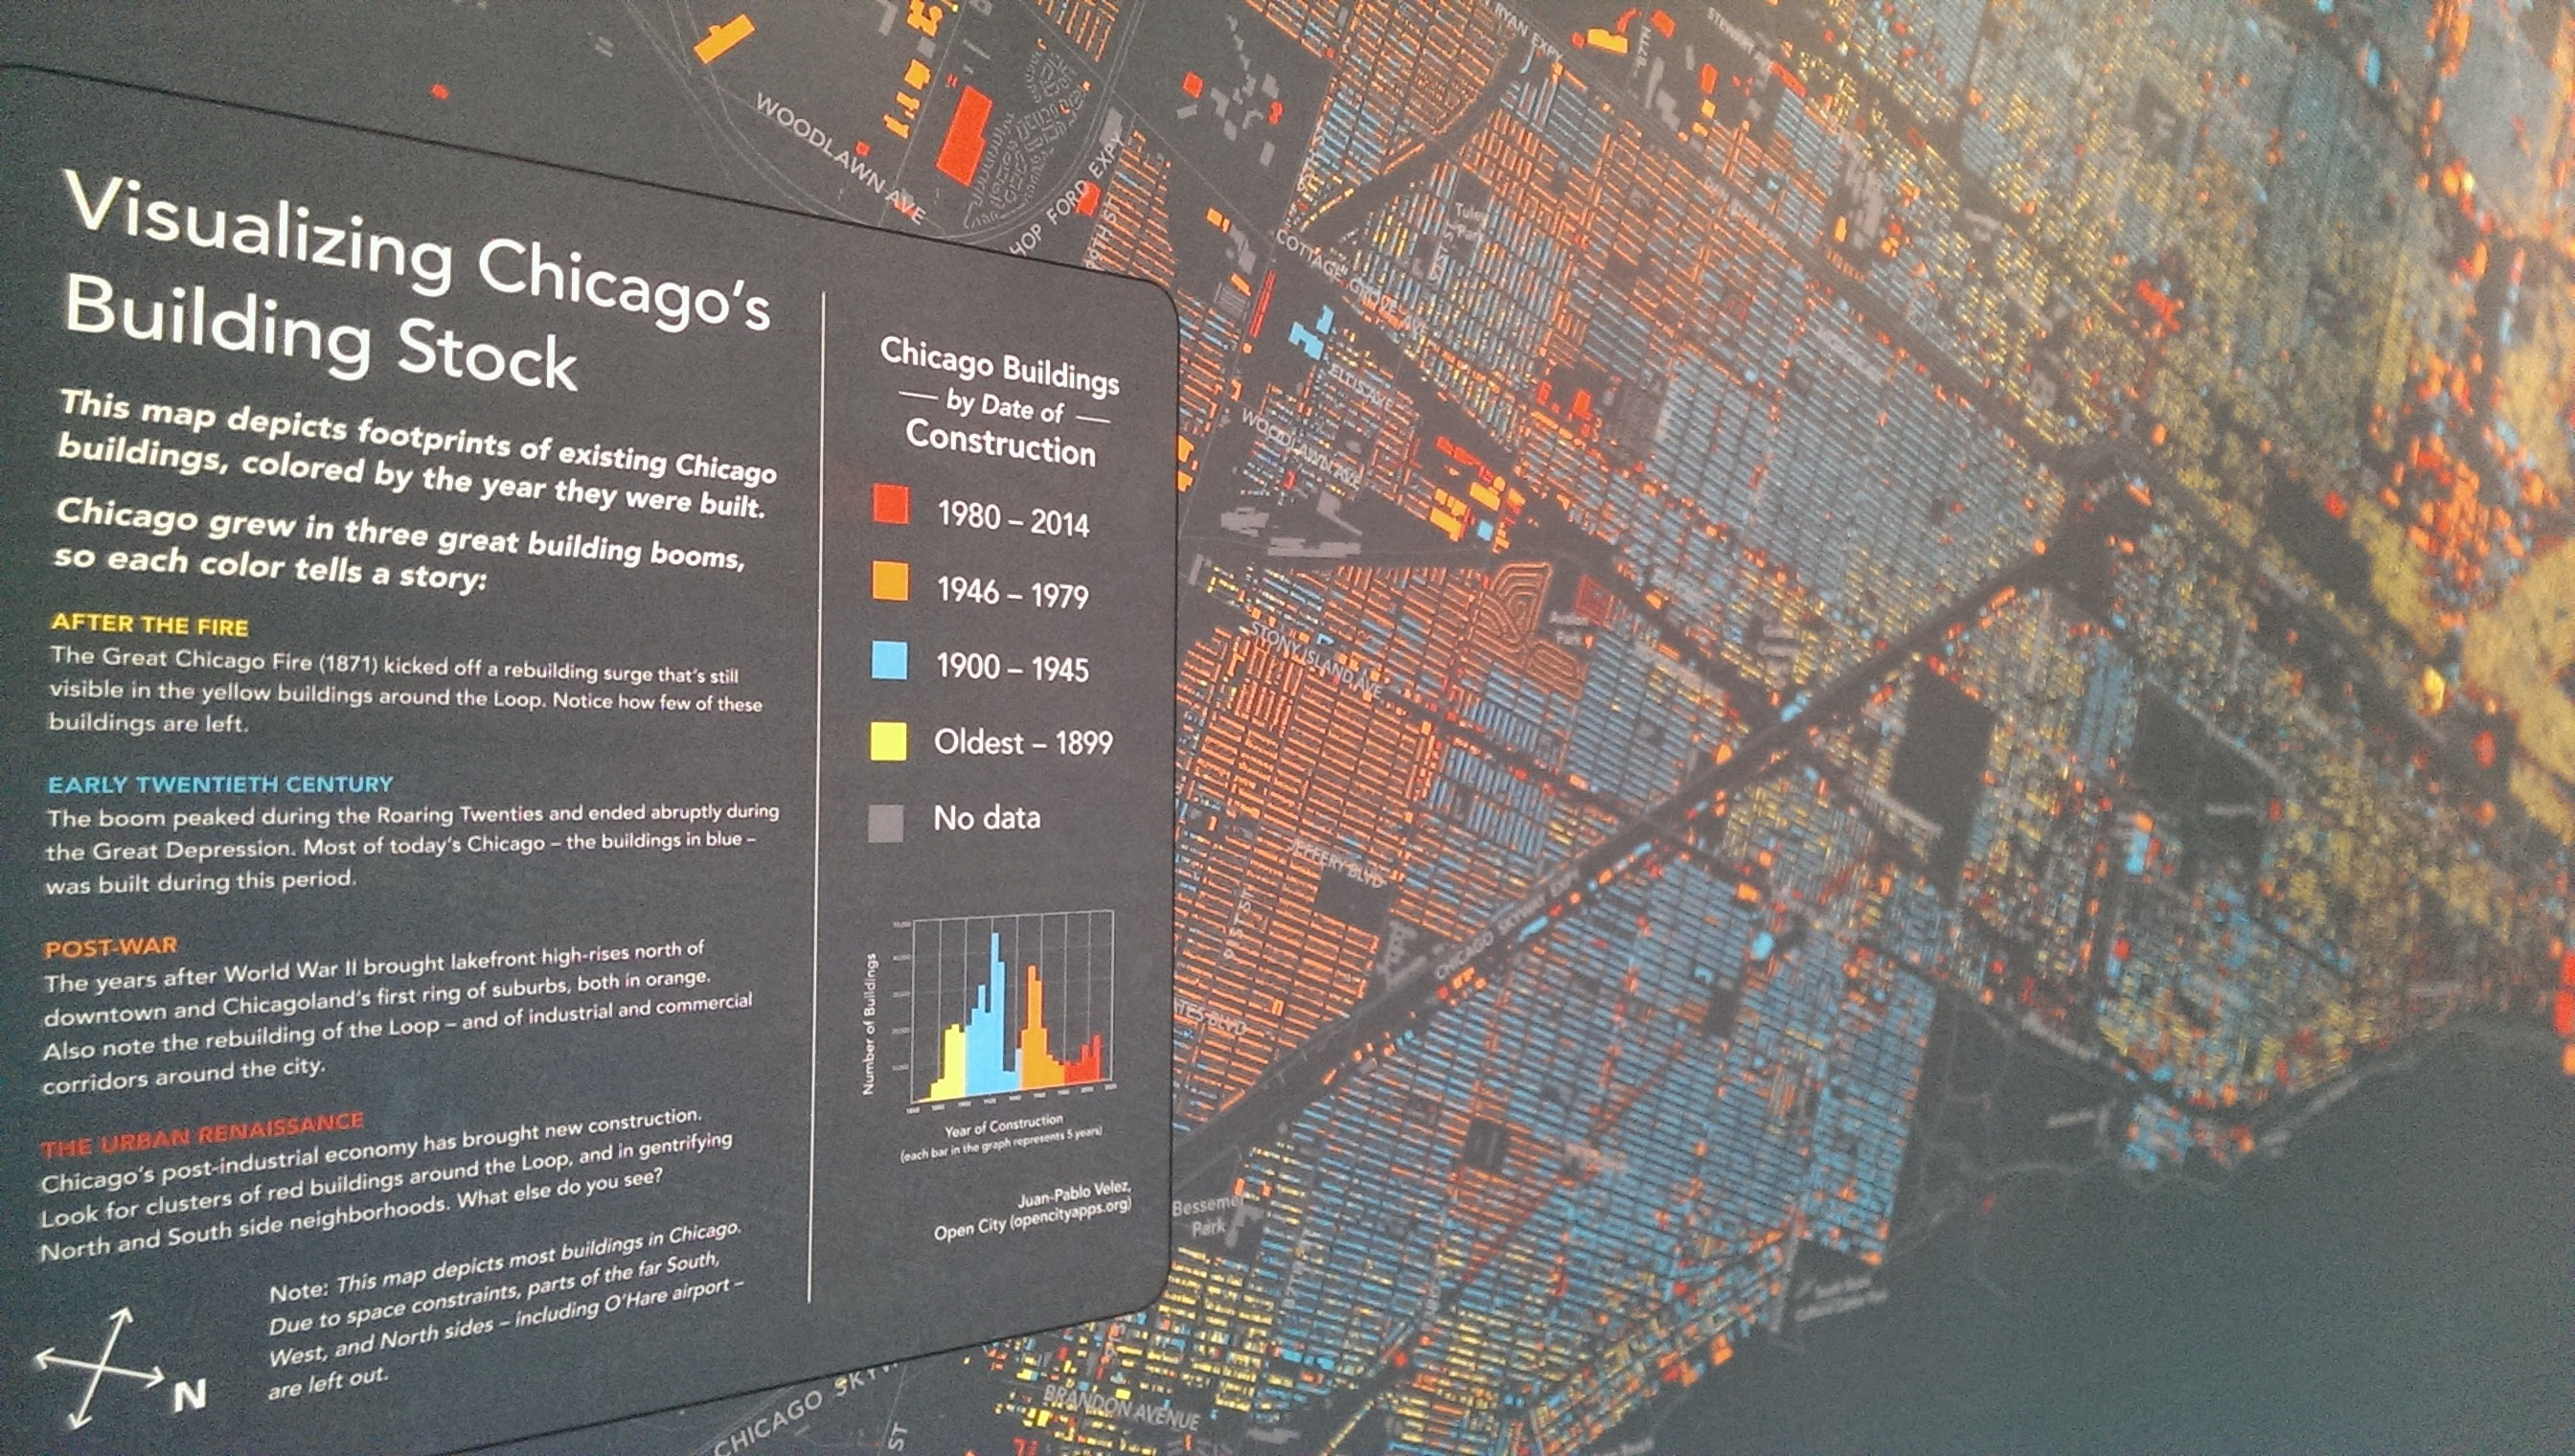 Visualizing Chicago's Building Stock, Chicago: City of Big Data